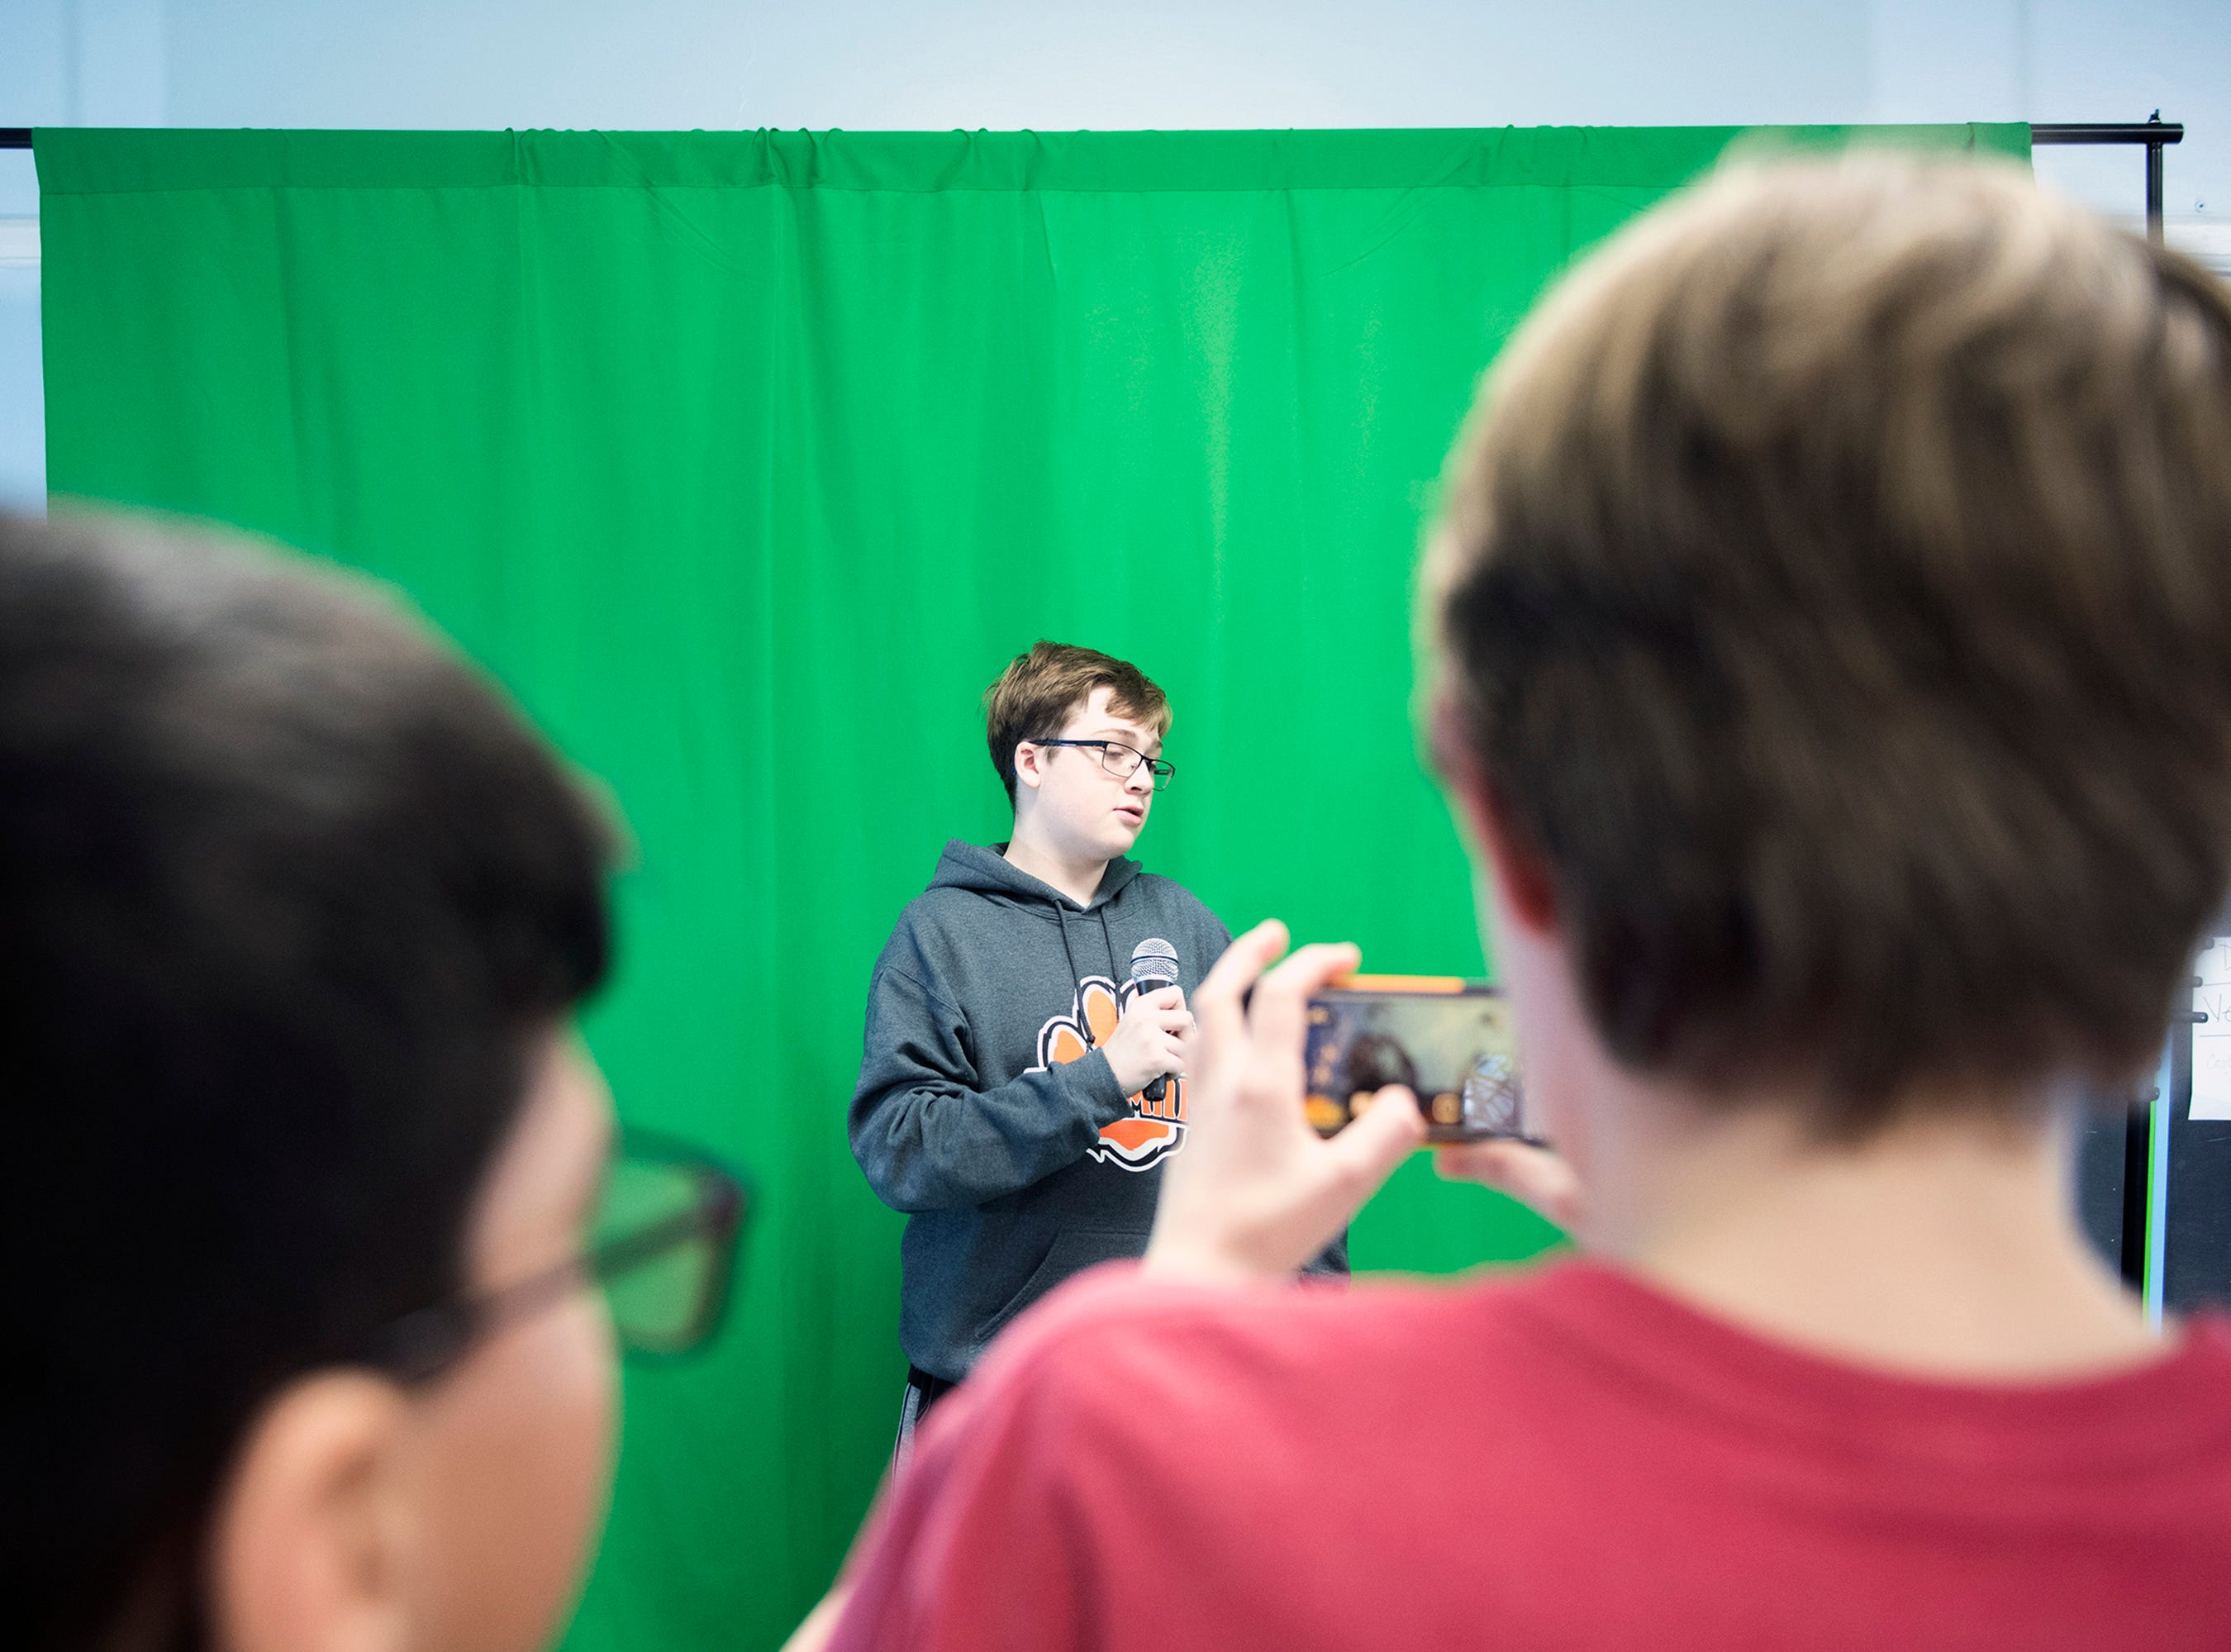 Matt Pauman, 12, stands in front of a green screen at Pitman Middle School's MakerSpace Thursday, Jan. 10, 2019 in Pitman, N.J.